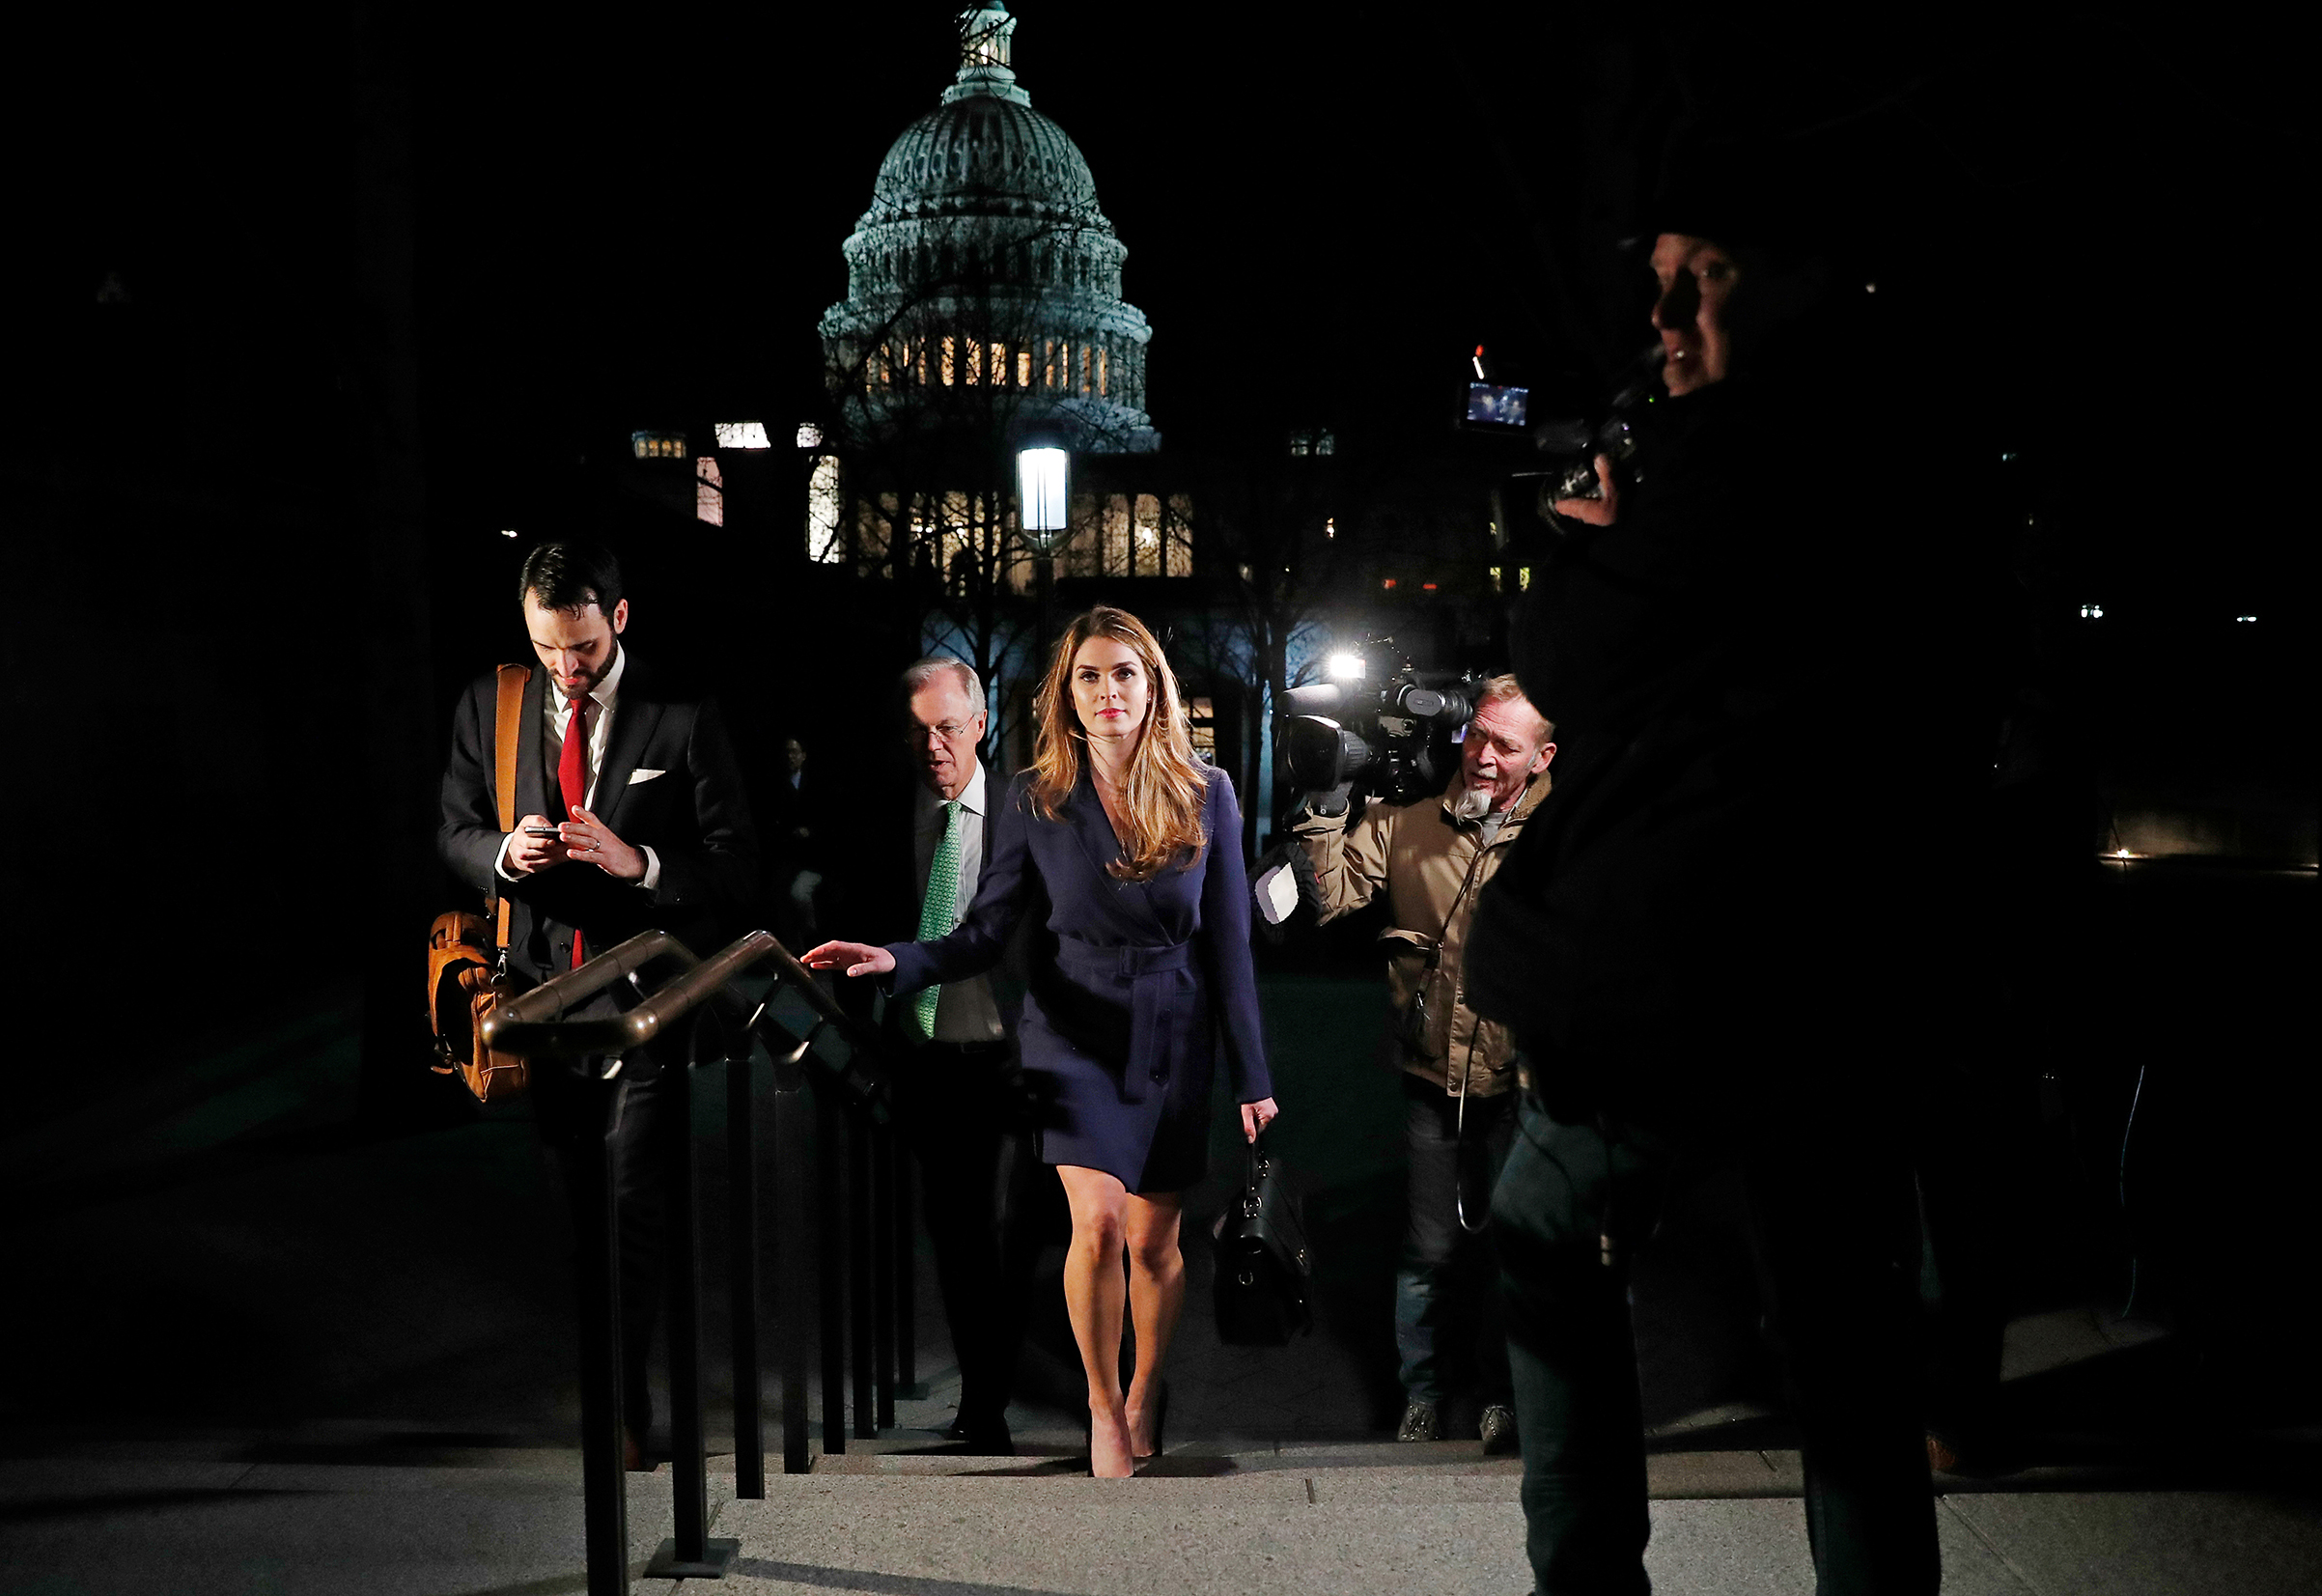 White House Communications Director Hope Hicks leaves the U.S. Capitol in Washington on Feb. 27, 2018.